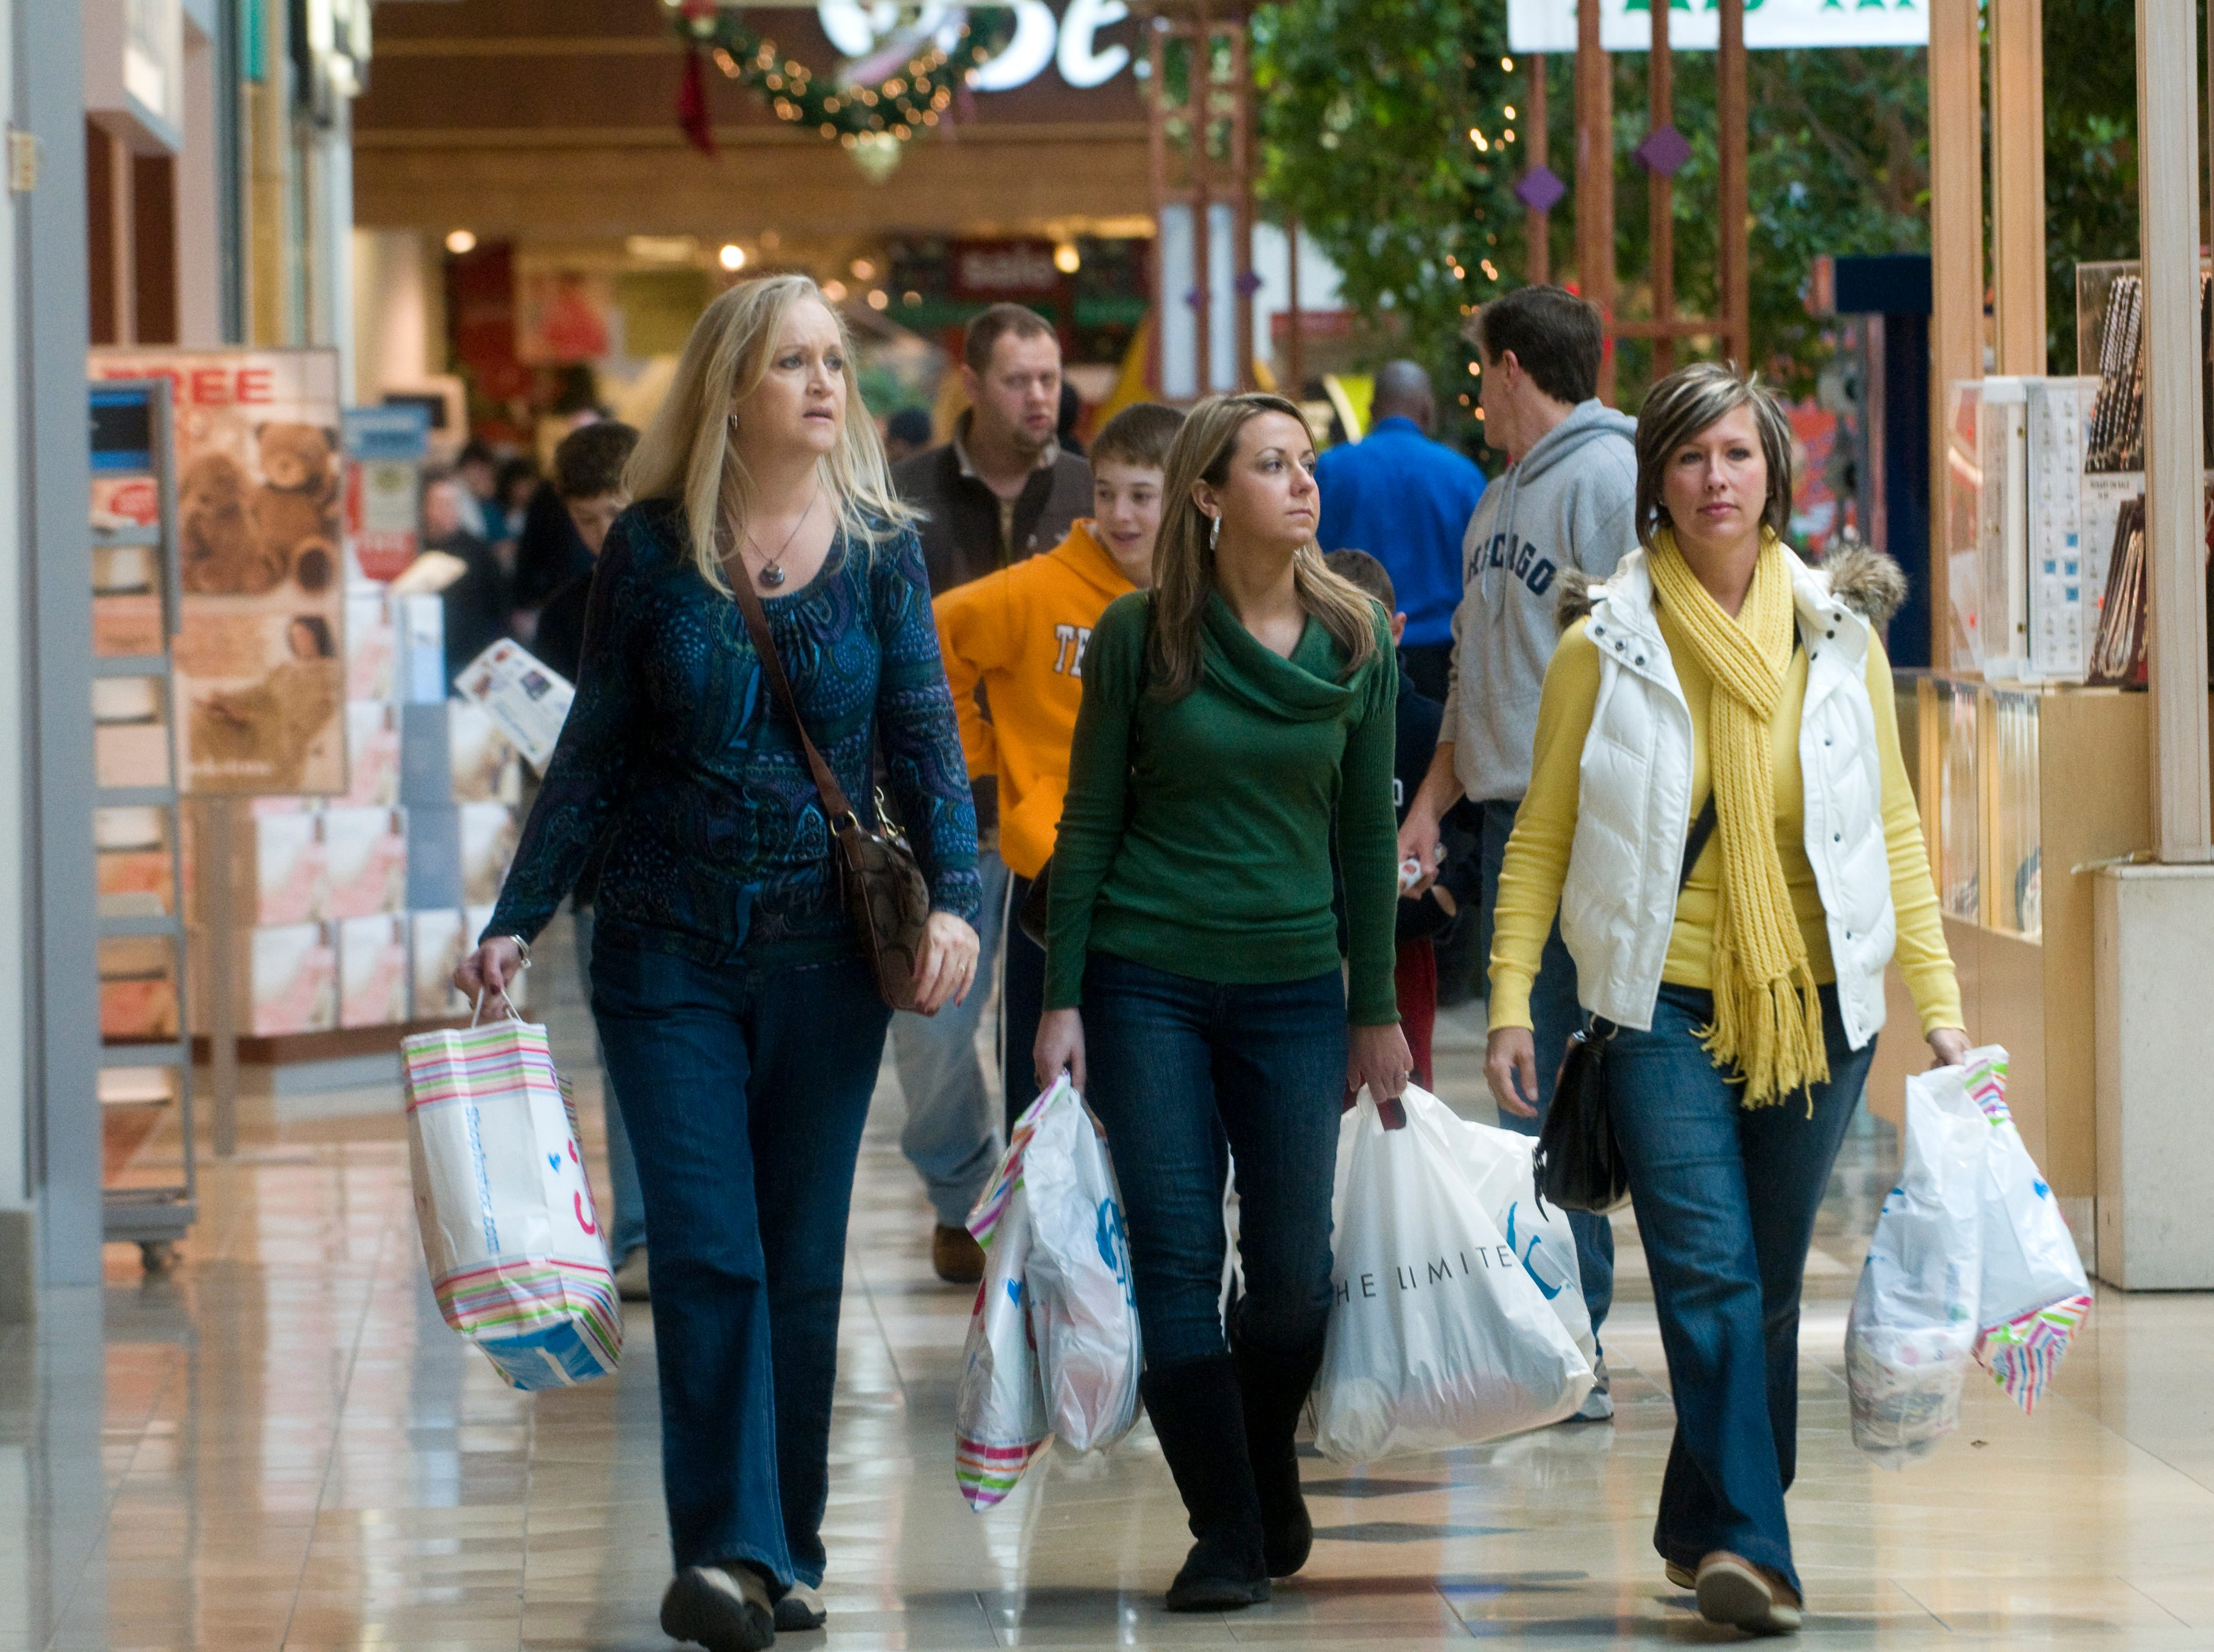 Kim Jackson, left, and her daughter in law Haley Jackson, center, and friend Kristie Dunlap carry packages Friday, Nov. 27, 2009 at West Town Mall. The three women started their Black Friday shopping spree at 5 a.m.